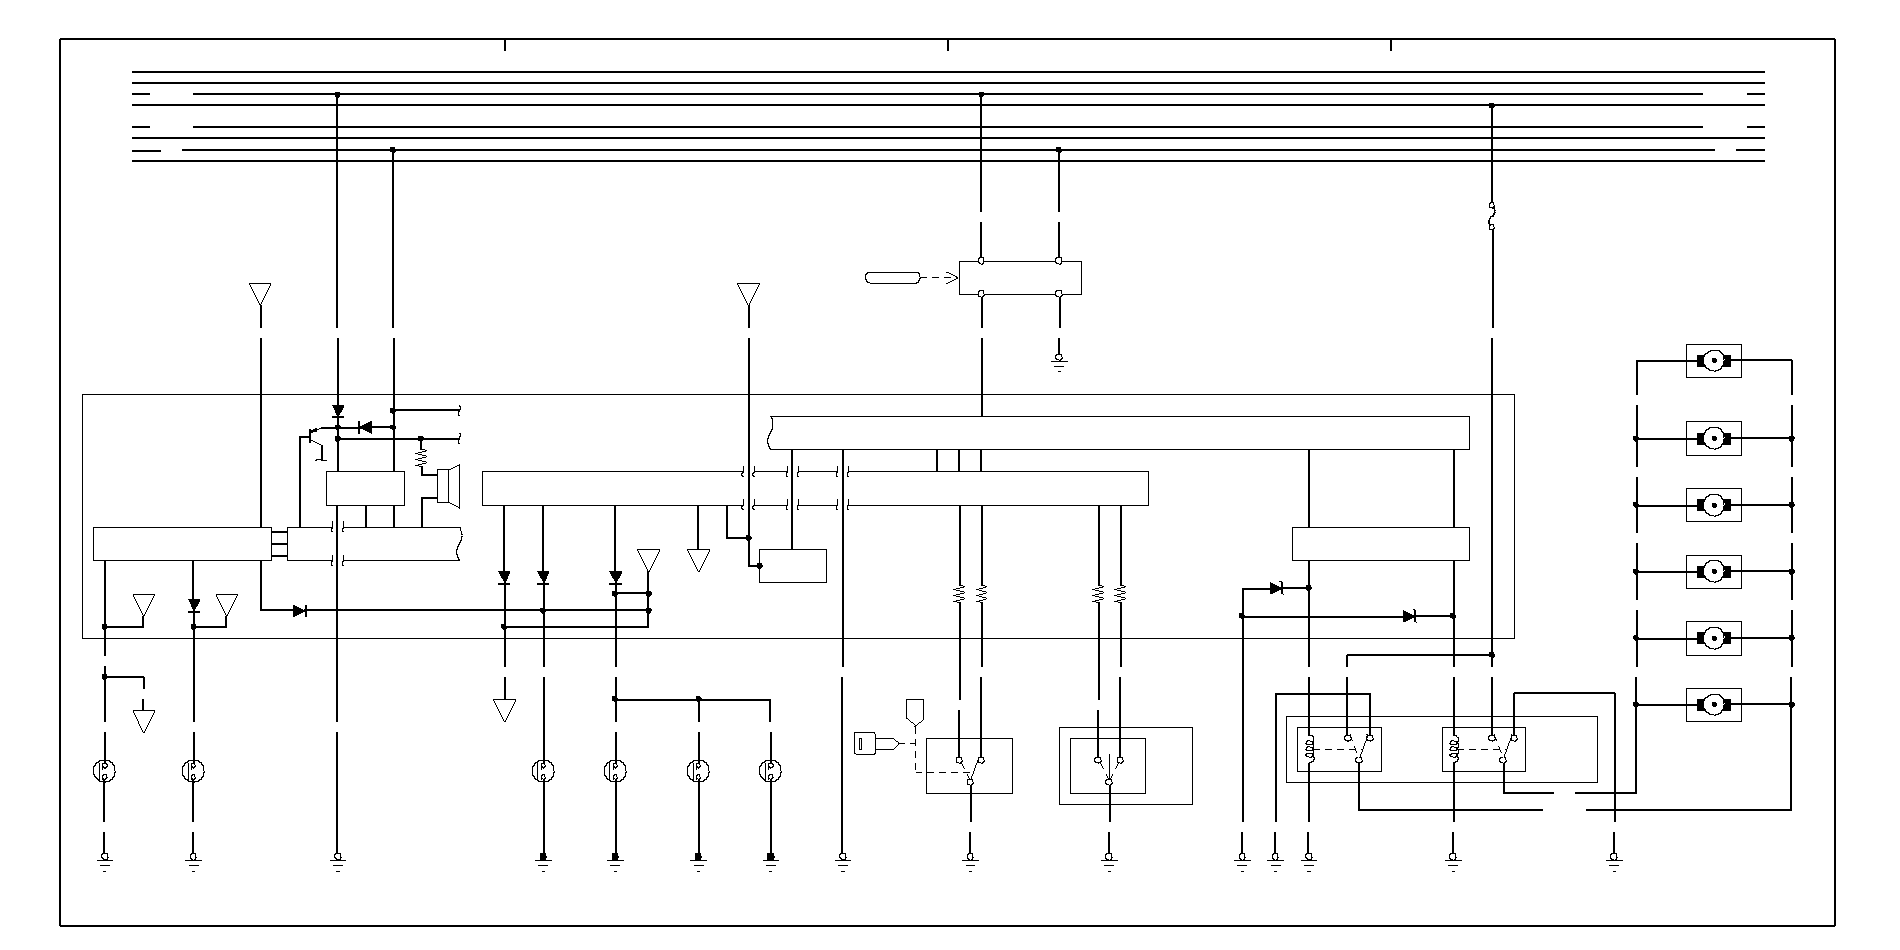 Wiring Diagram Honda Jazz 2009